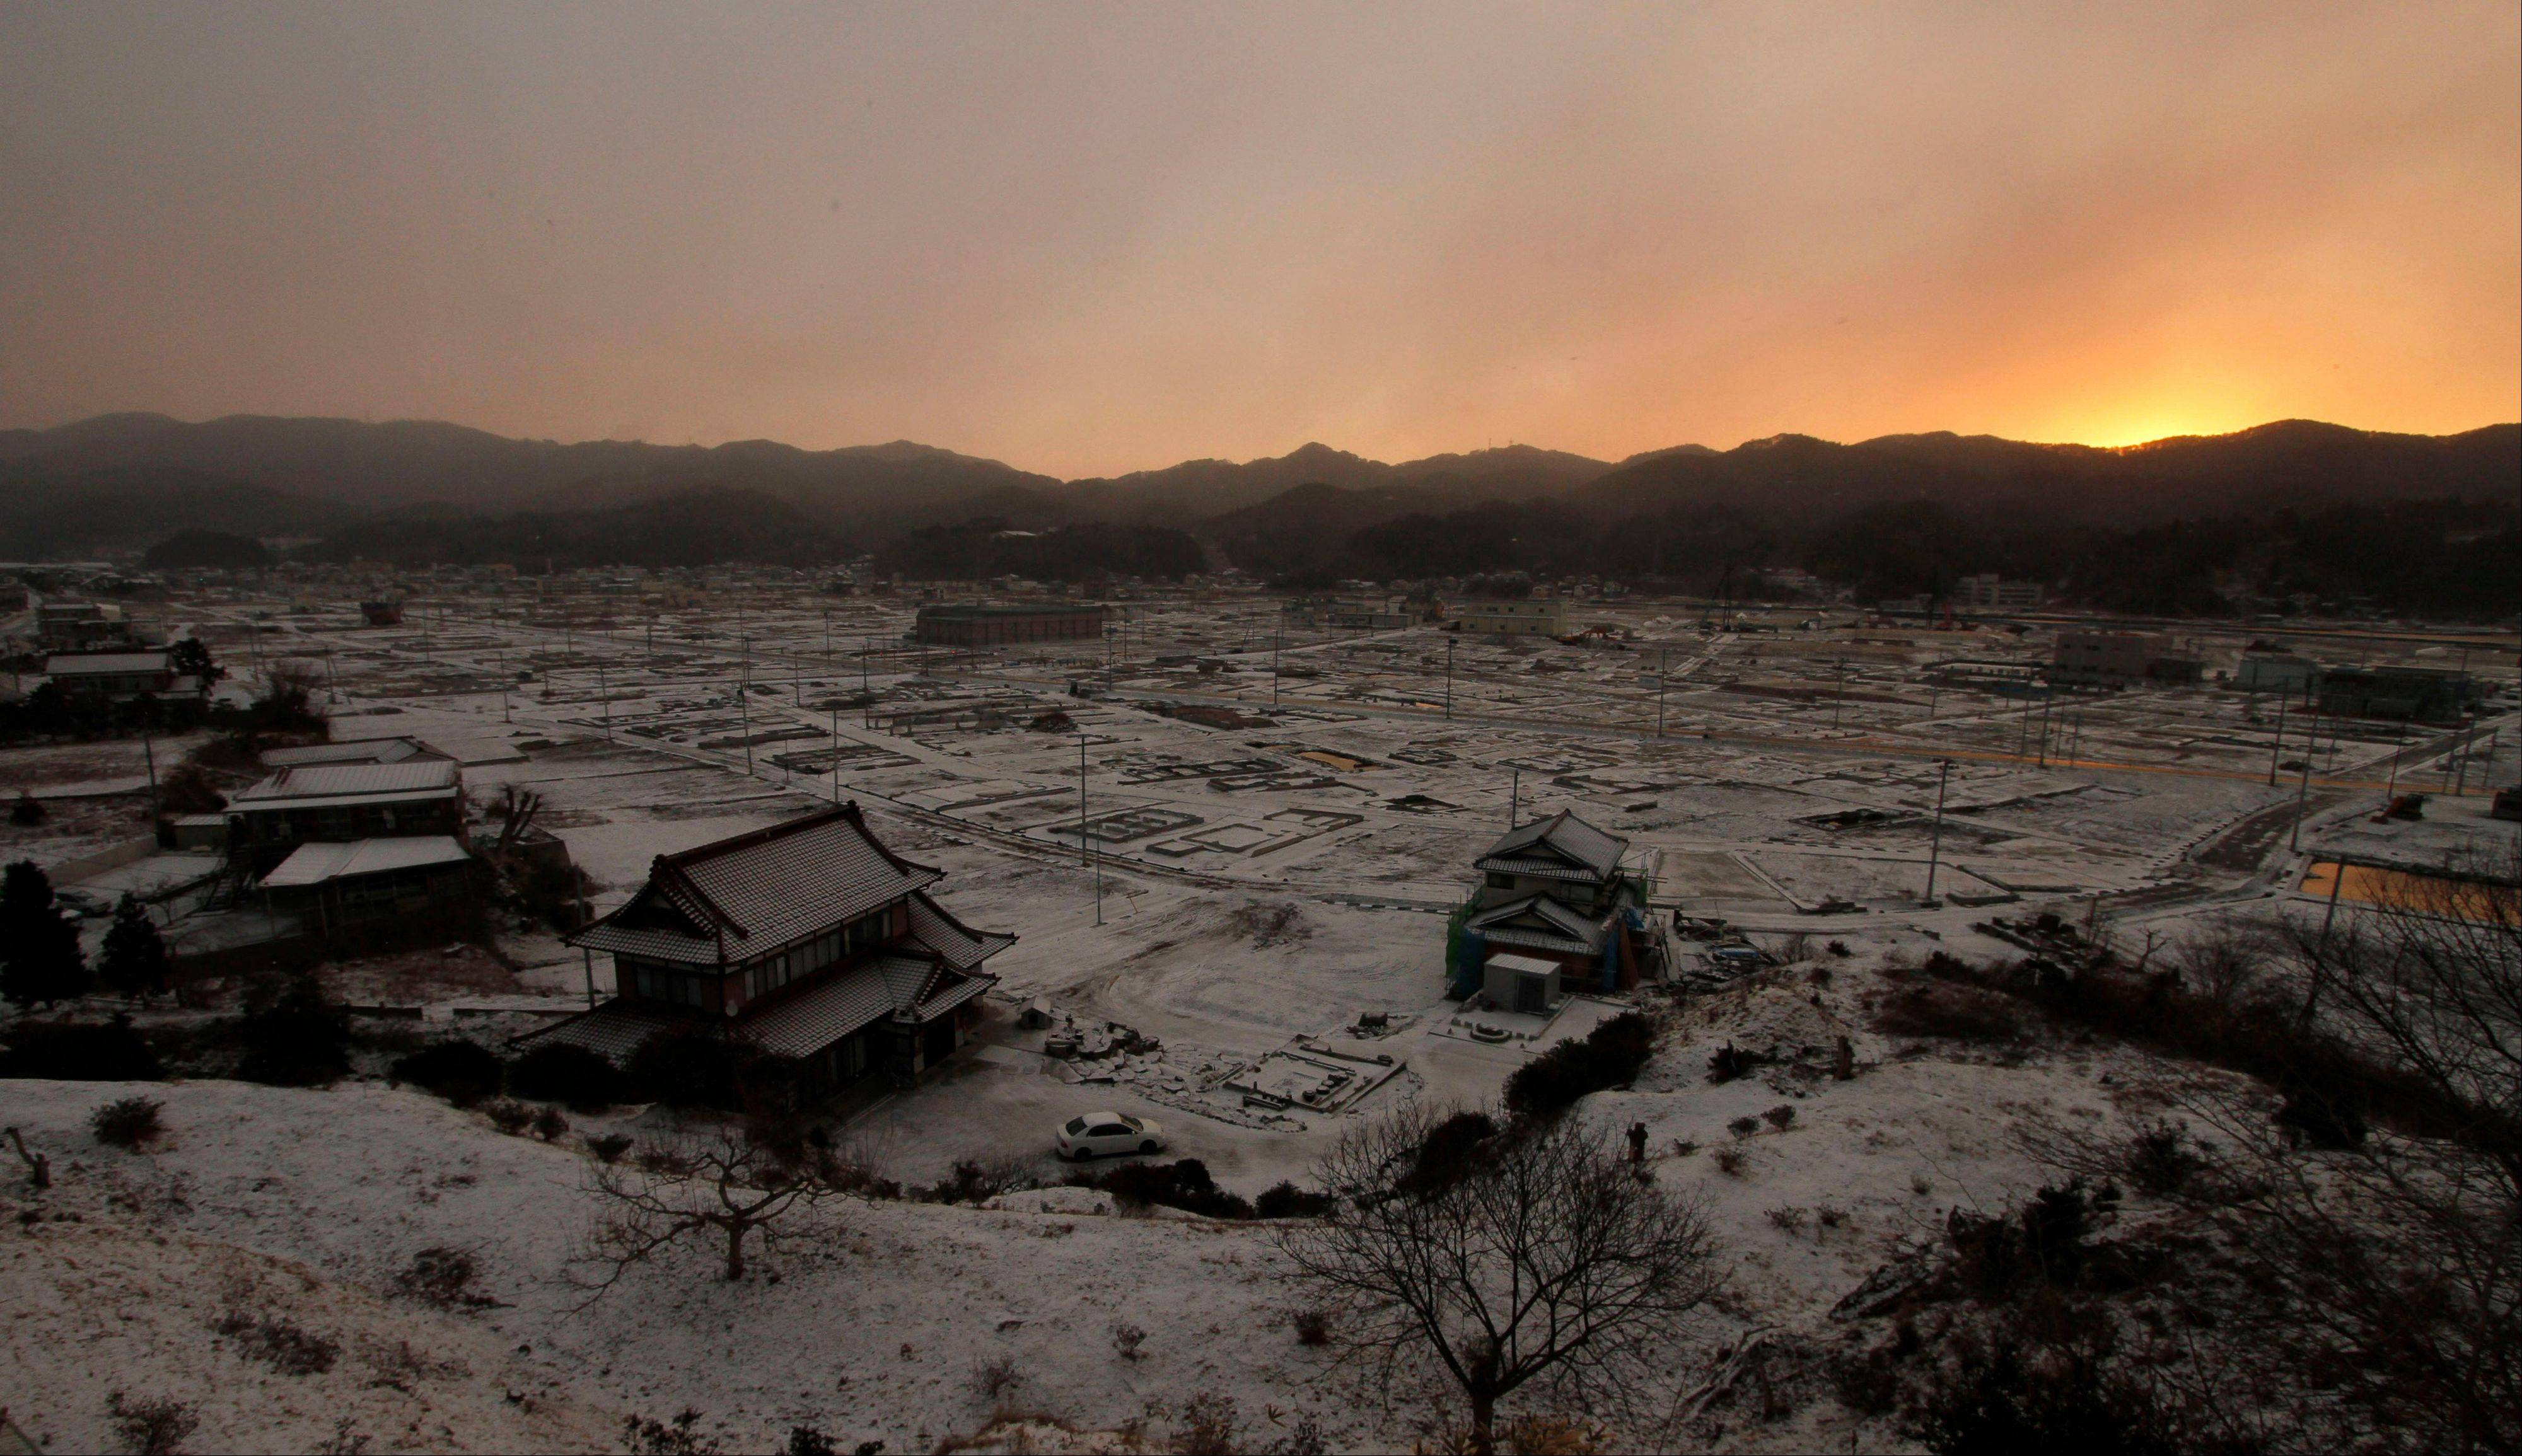 Houses stand on a snow covered deserted port area, which was engulfed by a tsunami after the March 11, 2011 earthquake, in Kesennuma, Miyagi Prefecture, northeastern Japan, at dawn on Monday, March 11, 2013. Japan is marking the second anniversary of its earthquake, tsunami and nuclear catastrophe. Memorial services are planned Monday in Tokyo and in barren towns along the battered northeastern coast to coincide the moment the magnitude-9.0 earthquake � the strongest recorded in Japan's history � struck, unleashing a massive tsunami that killed nearly 19,000 people.